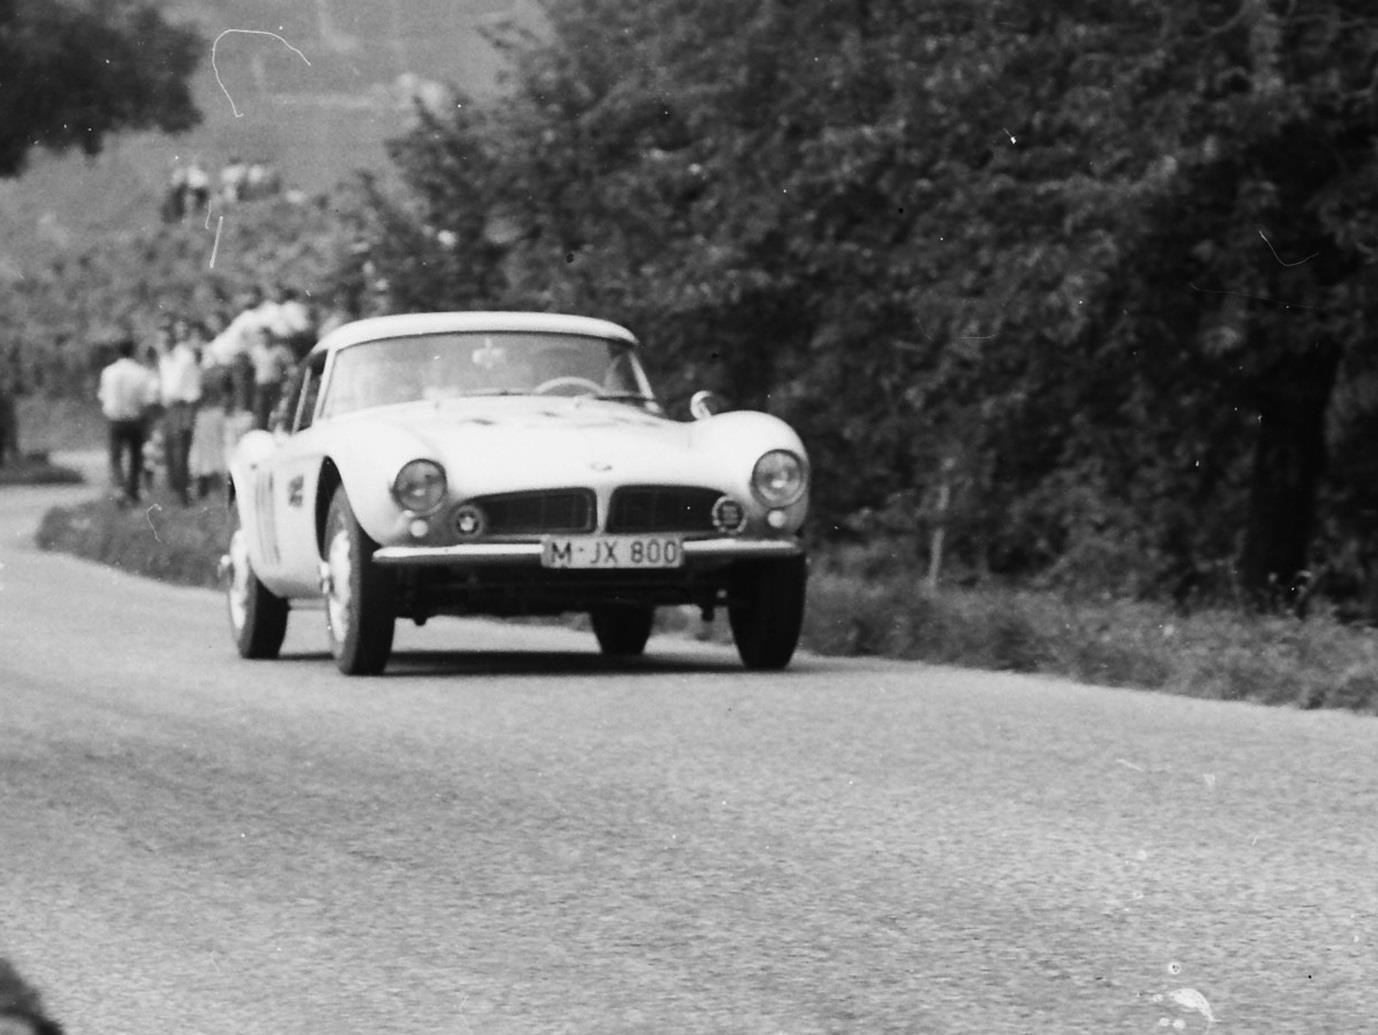 At the age of 57 he raced this factory BMW 507 at the European Hill Championship in 1958 at Ollon Villars